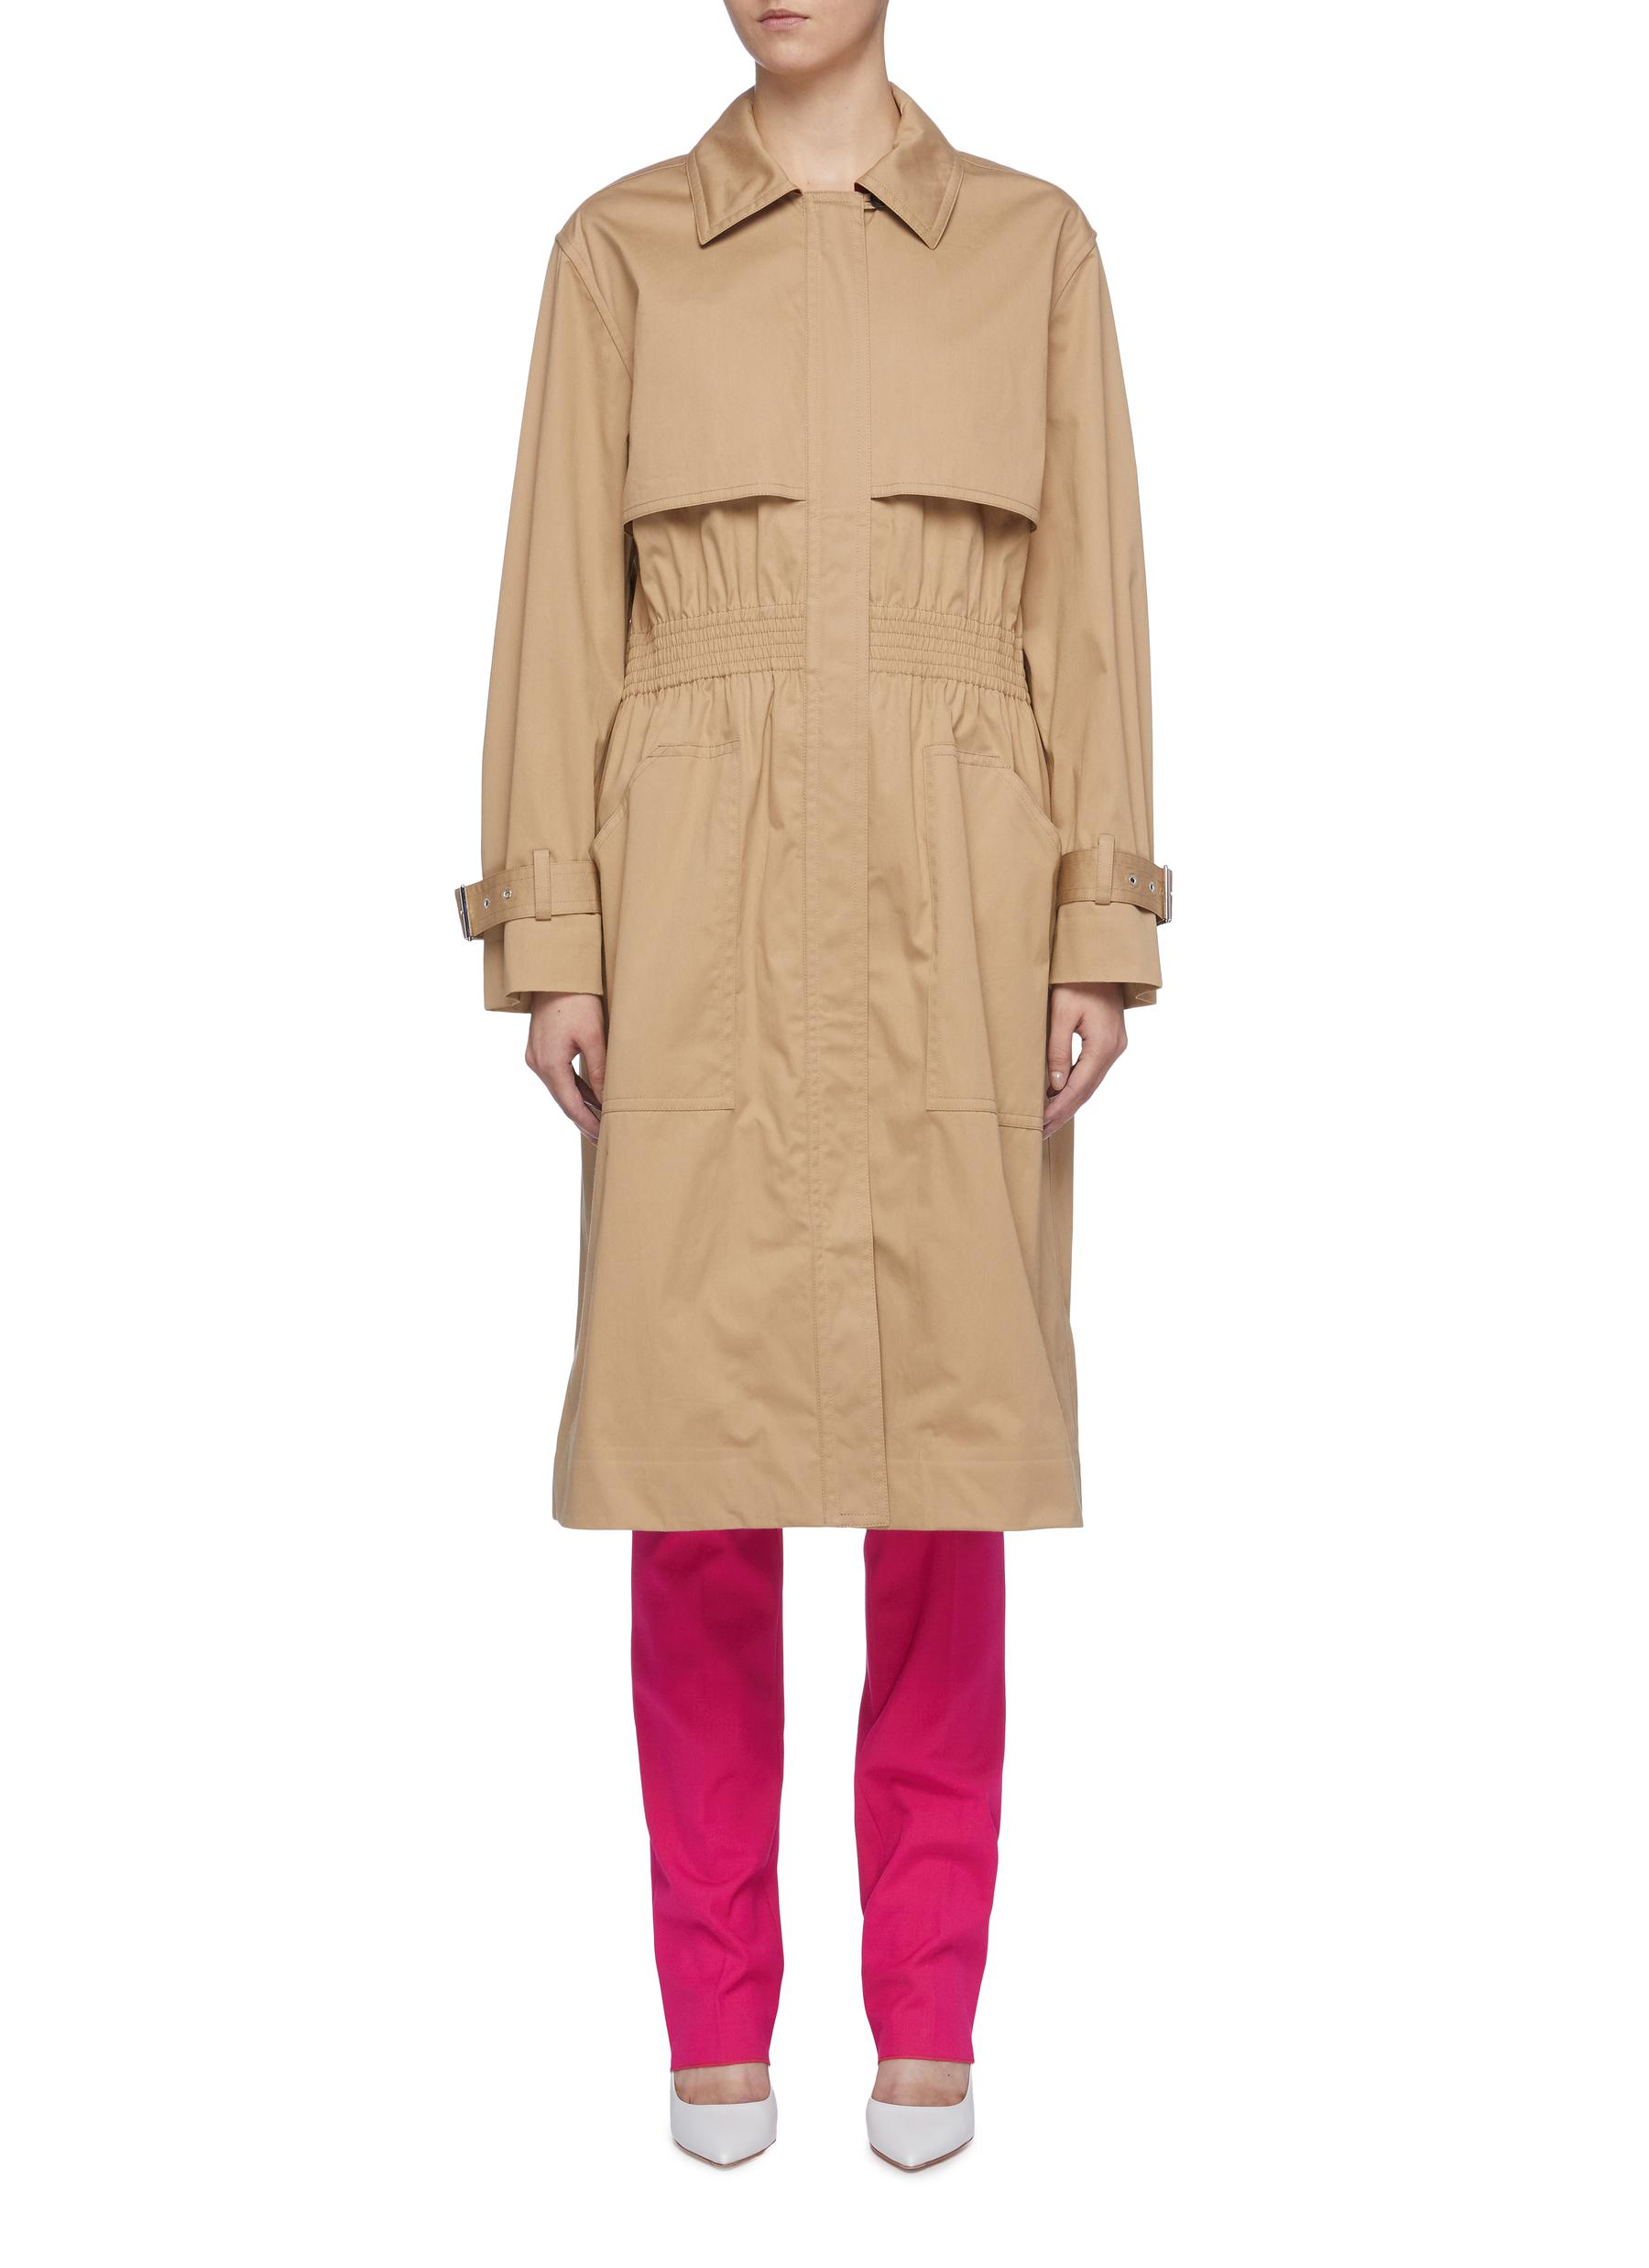 Shirred waist oversized trench coat by Victoria Beckham